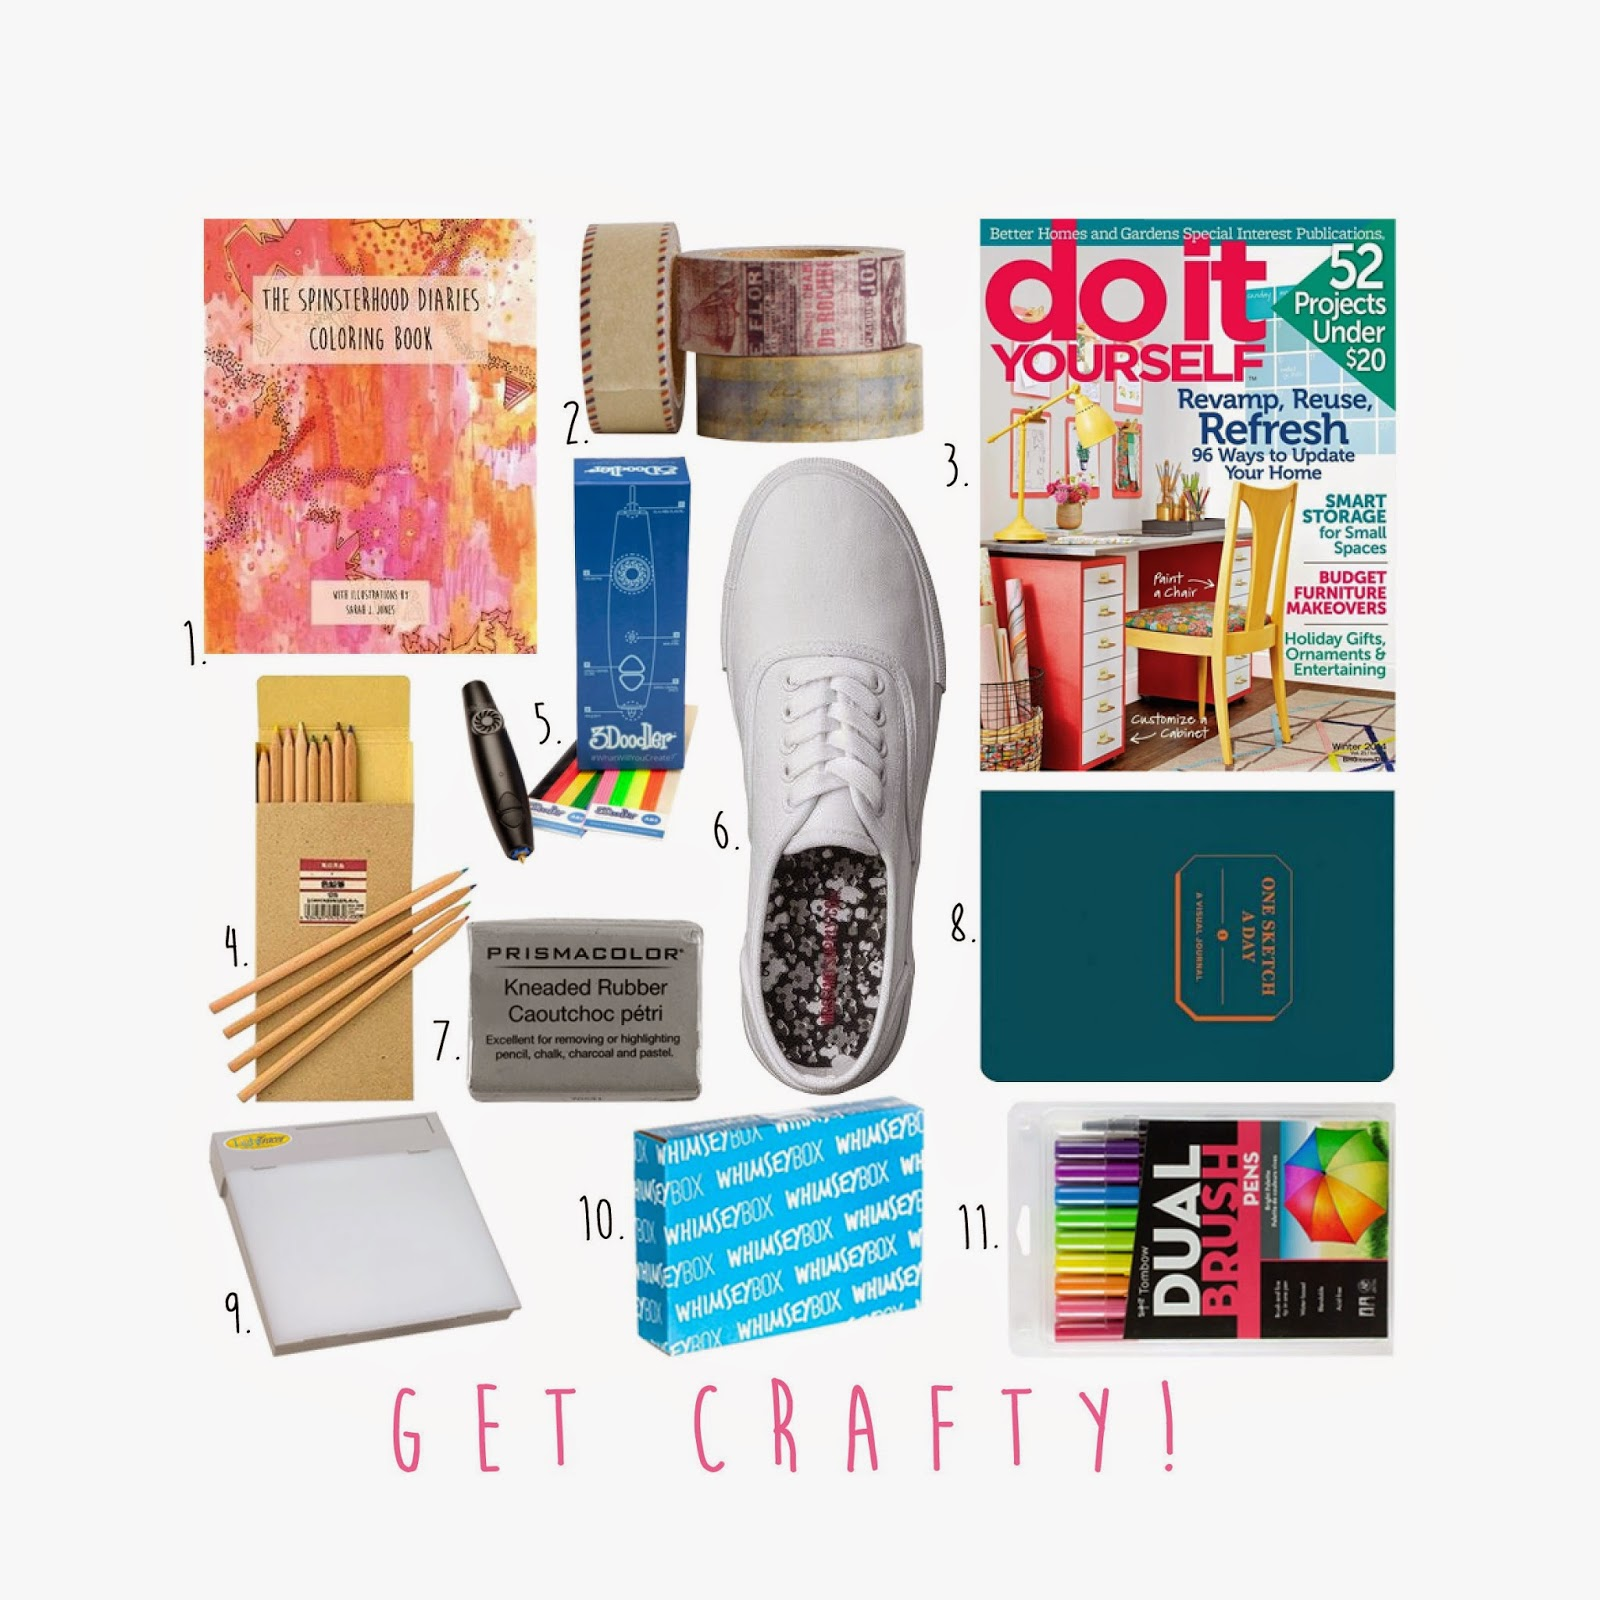 crafters-gift-guide, gift-ideas-for-crafters, craft-supplies, diy-gift-ideas